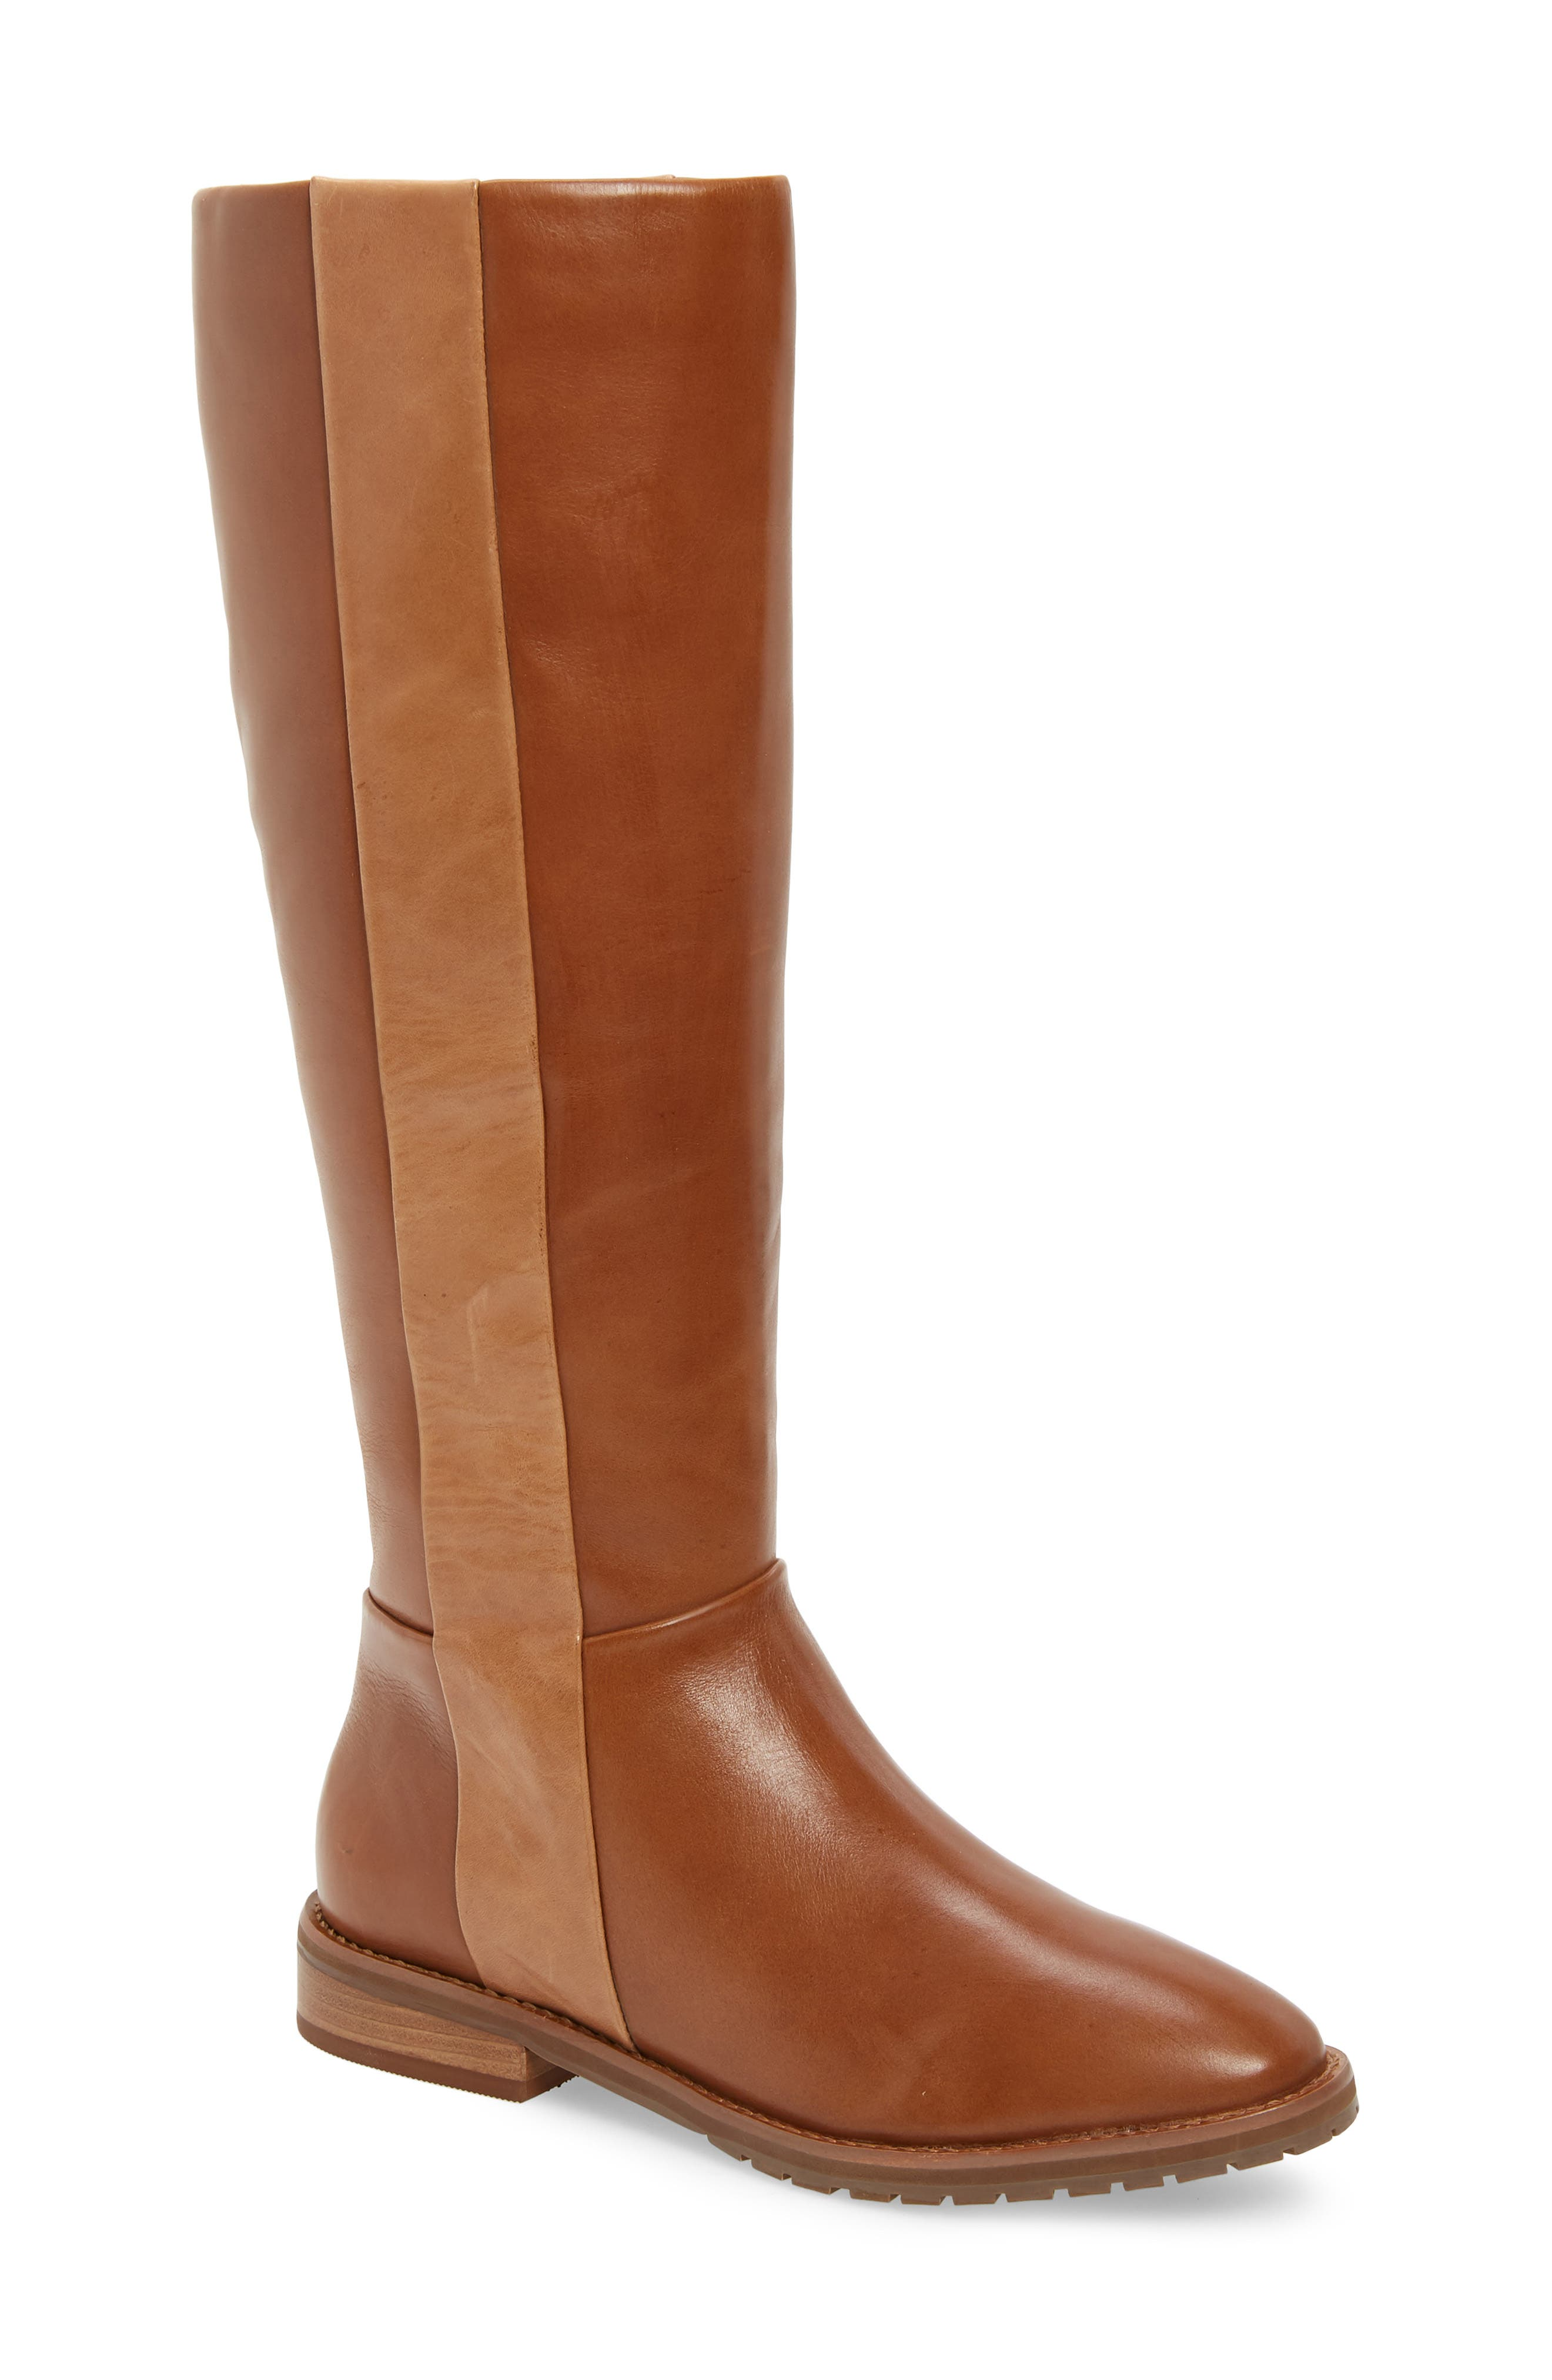 LUST FOR LIFE Mindset Knee High Boot in Cognac Leather